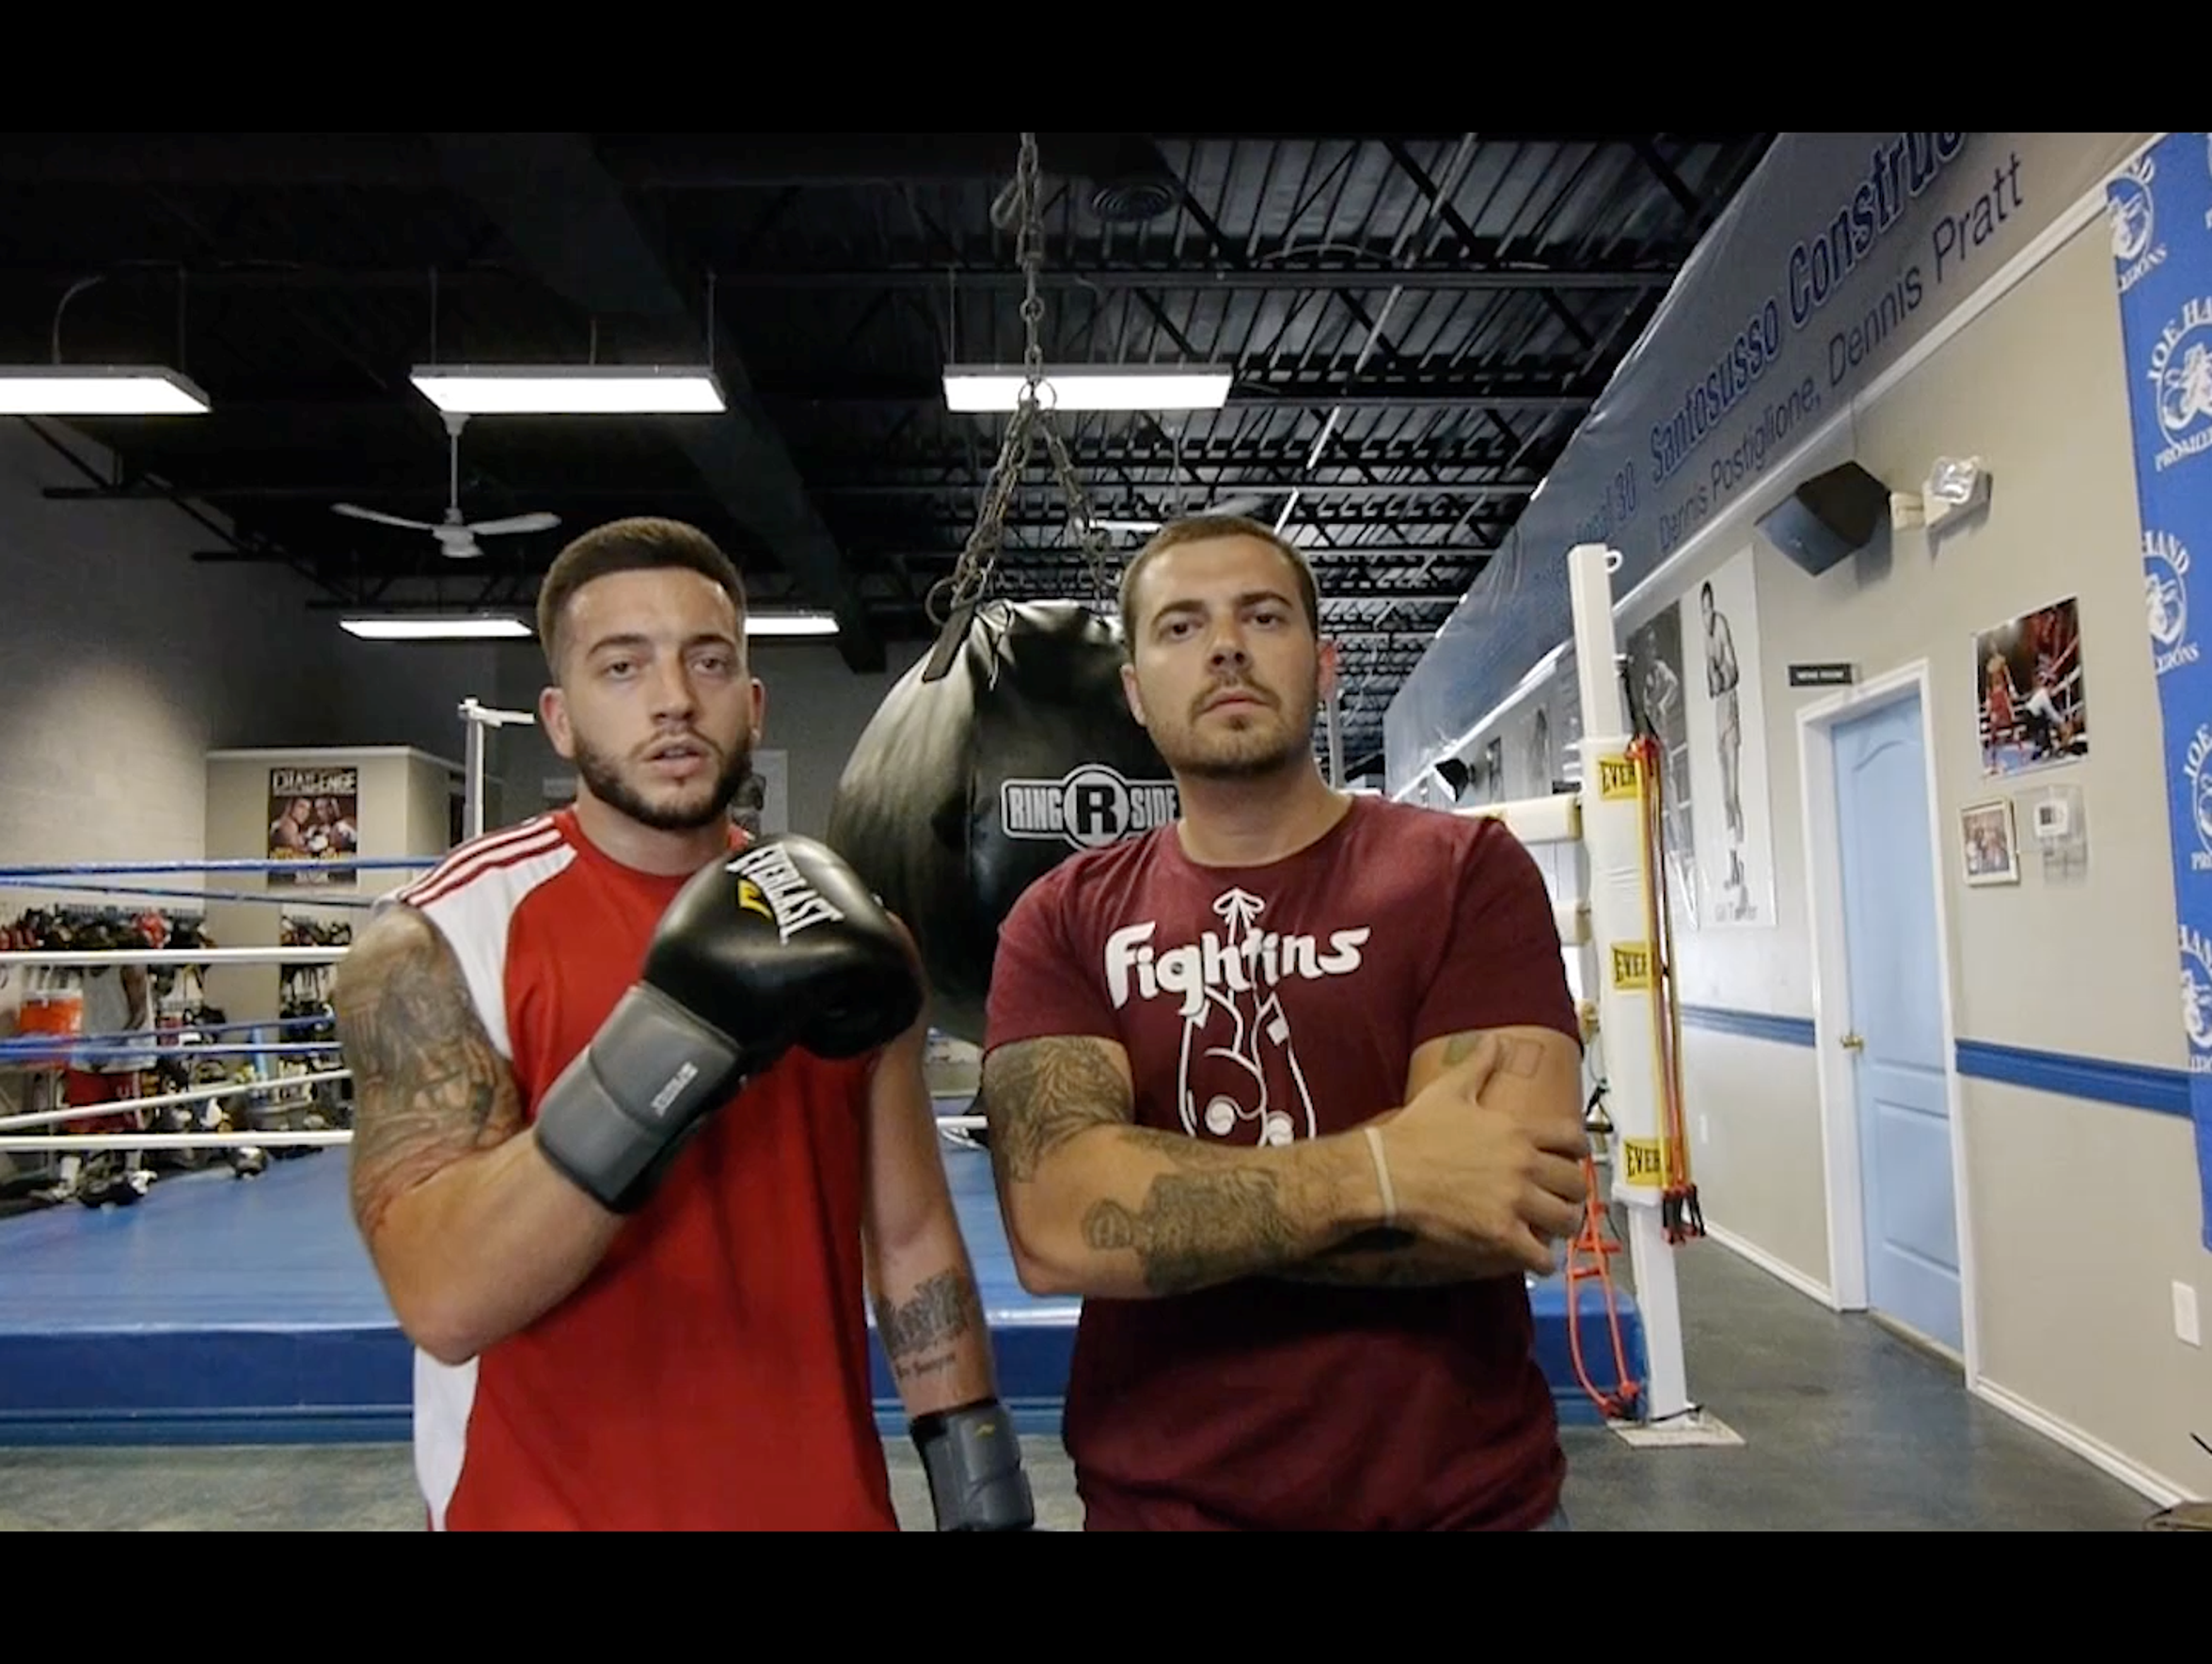 Augustus, aka Michael Marino (right) hangs out with his brother Steven Marino at the Joe Hand Boxing Gym in Philly in this scene from his video.    ​